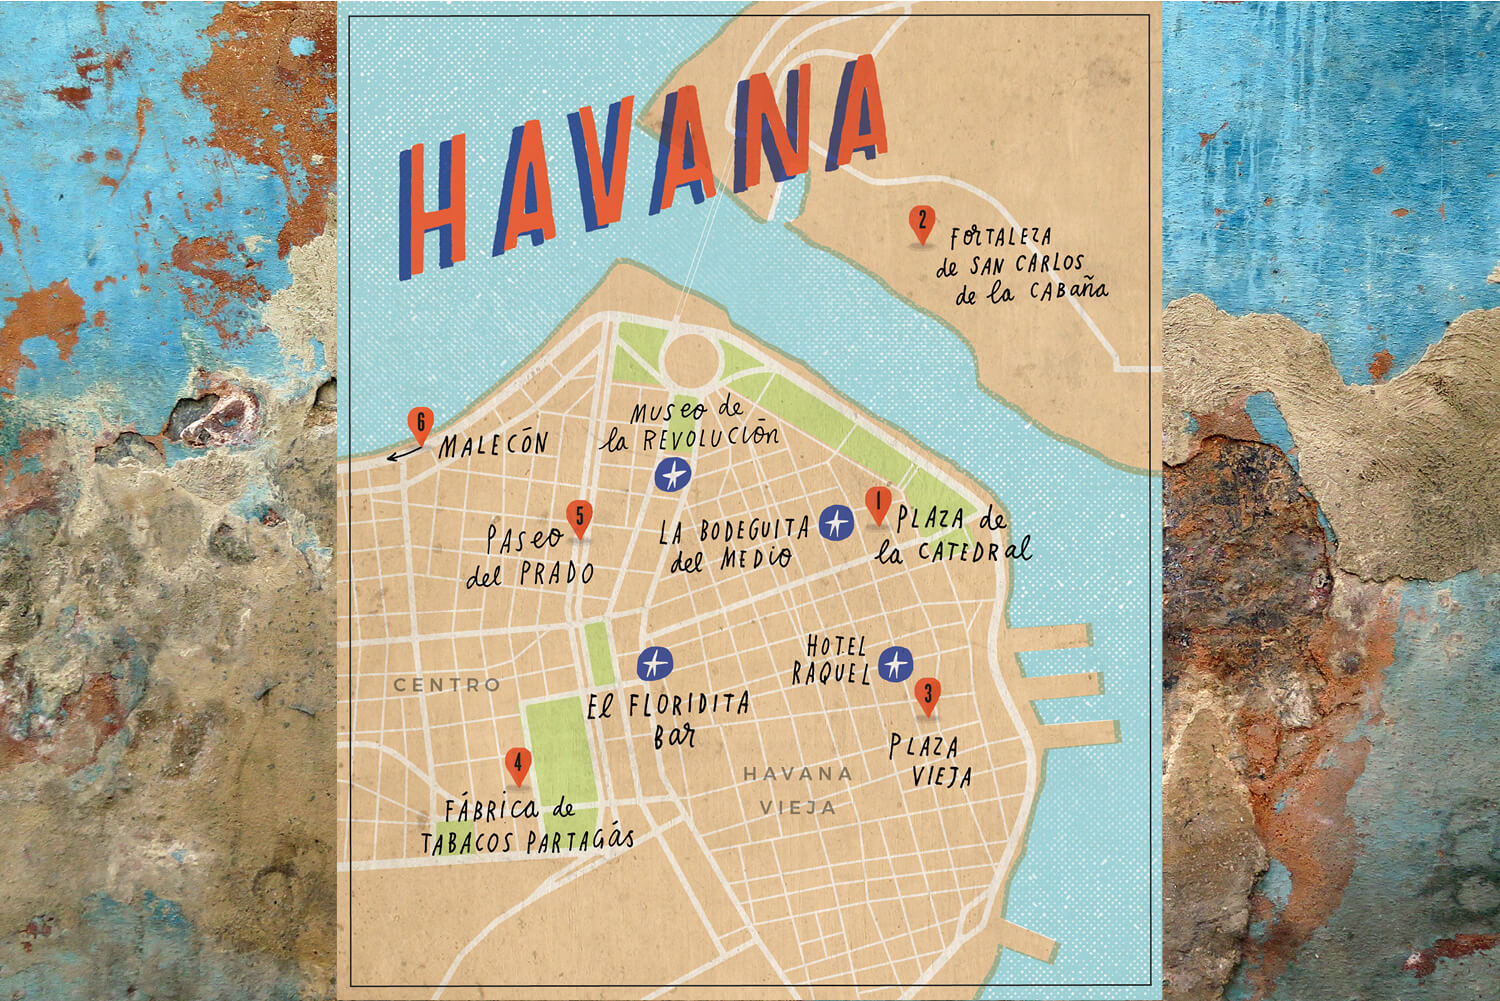 9 must see sights of old town havana international traveller 9 must see sights of old town havana havana cuba map gumiabroncs Gallery